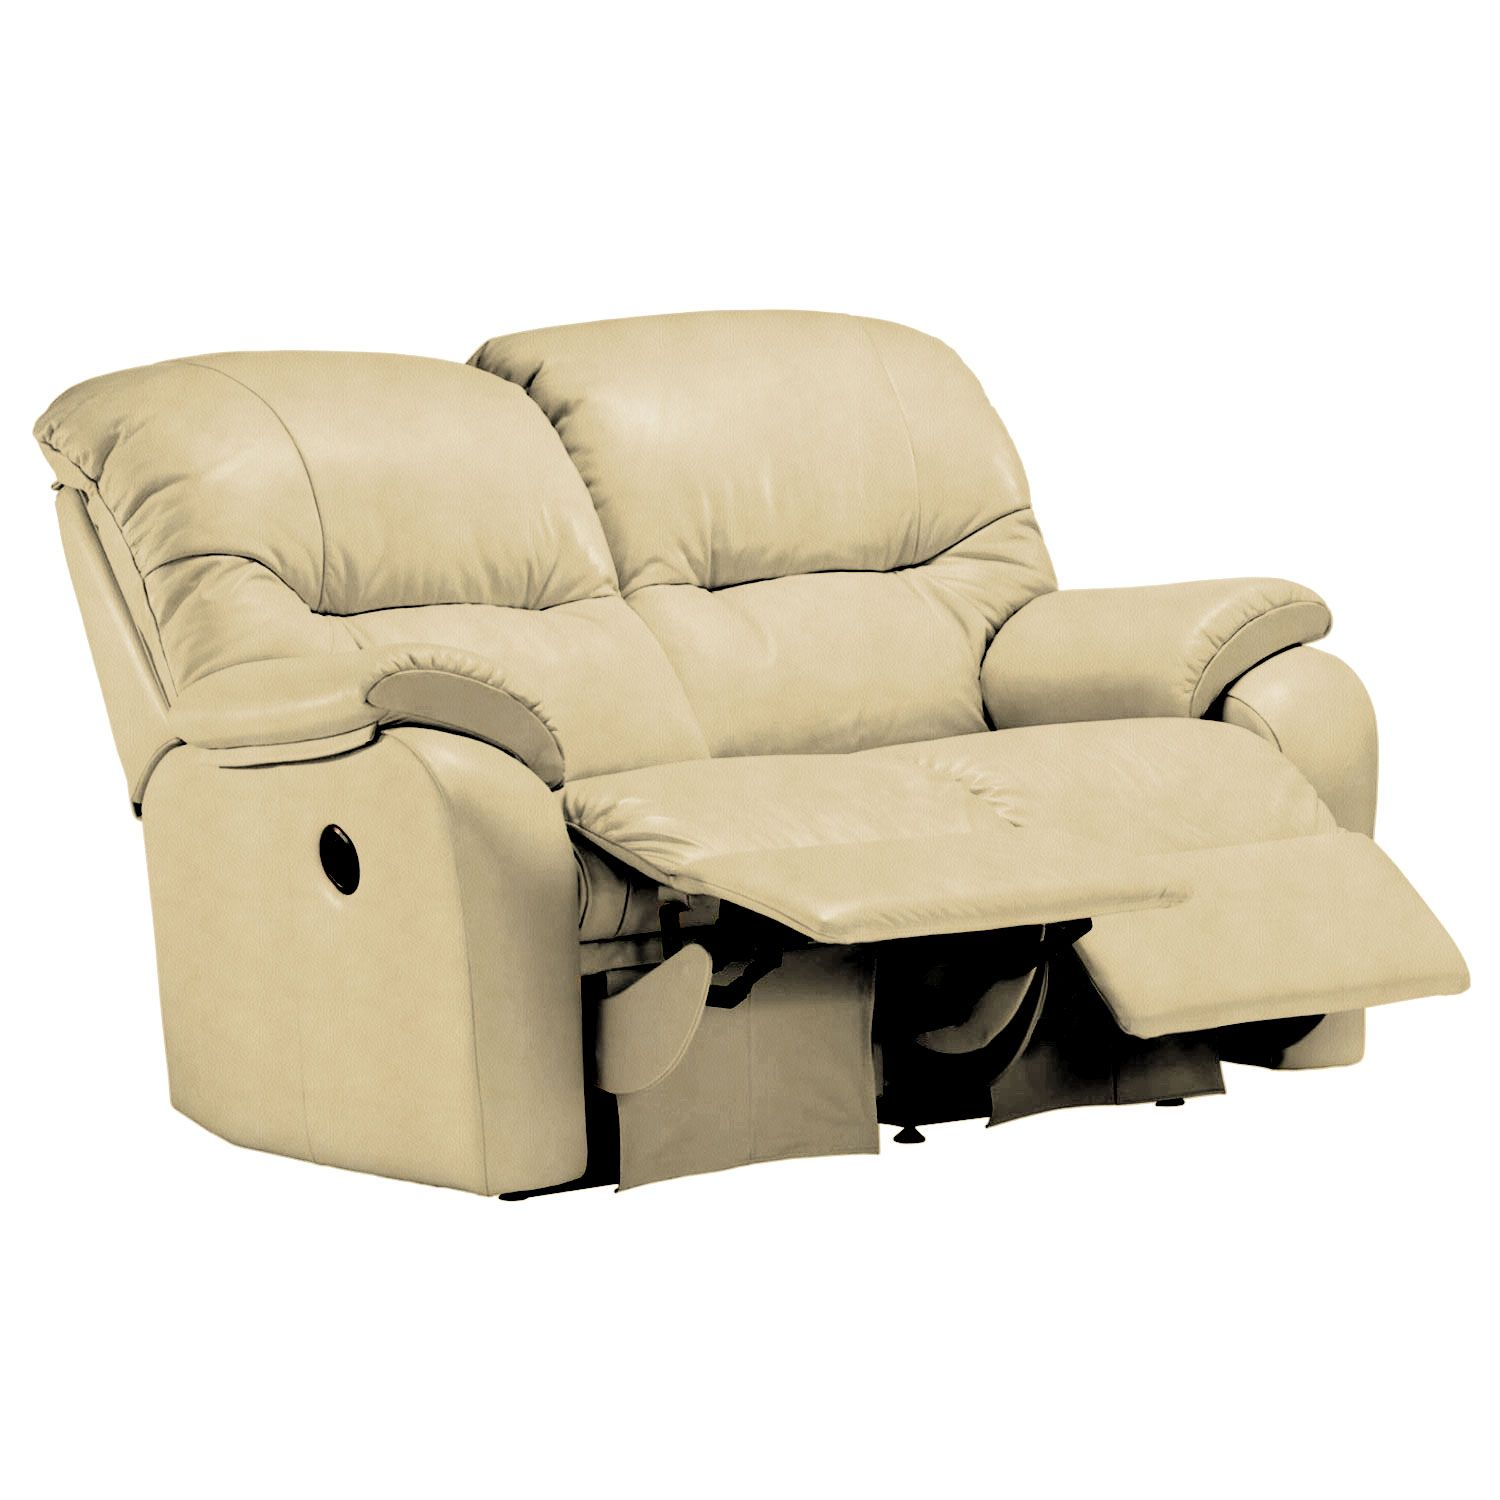 Image of G Plan Mistral 2 Seater Left Power Recliner Leather Sofa